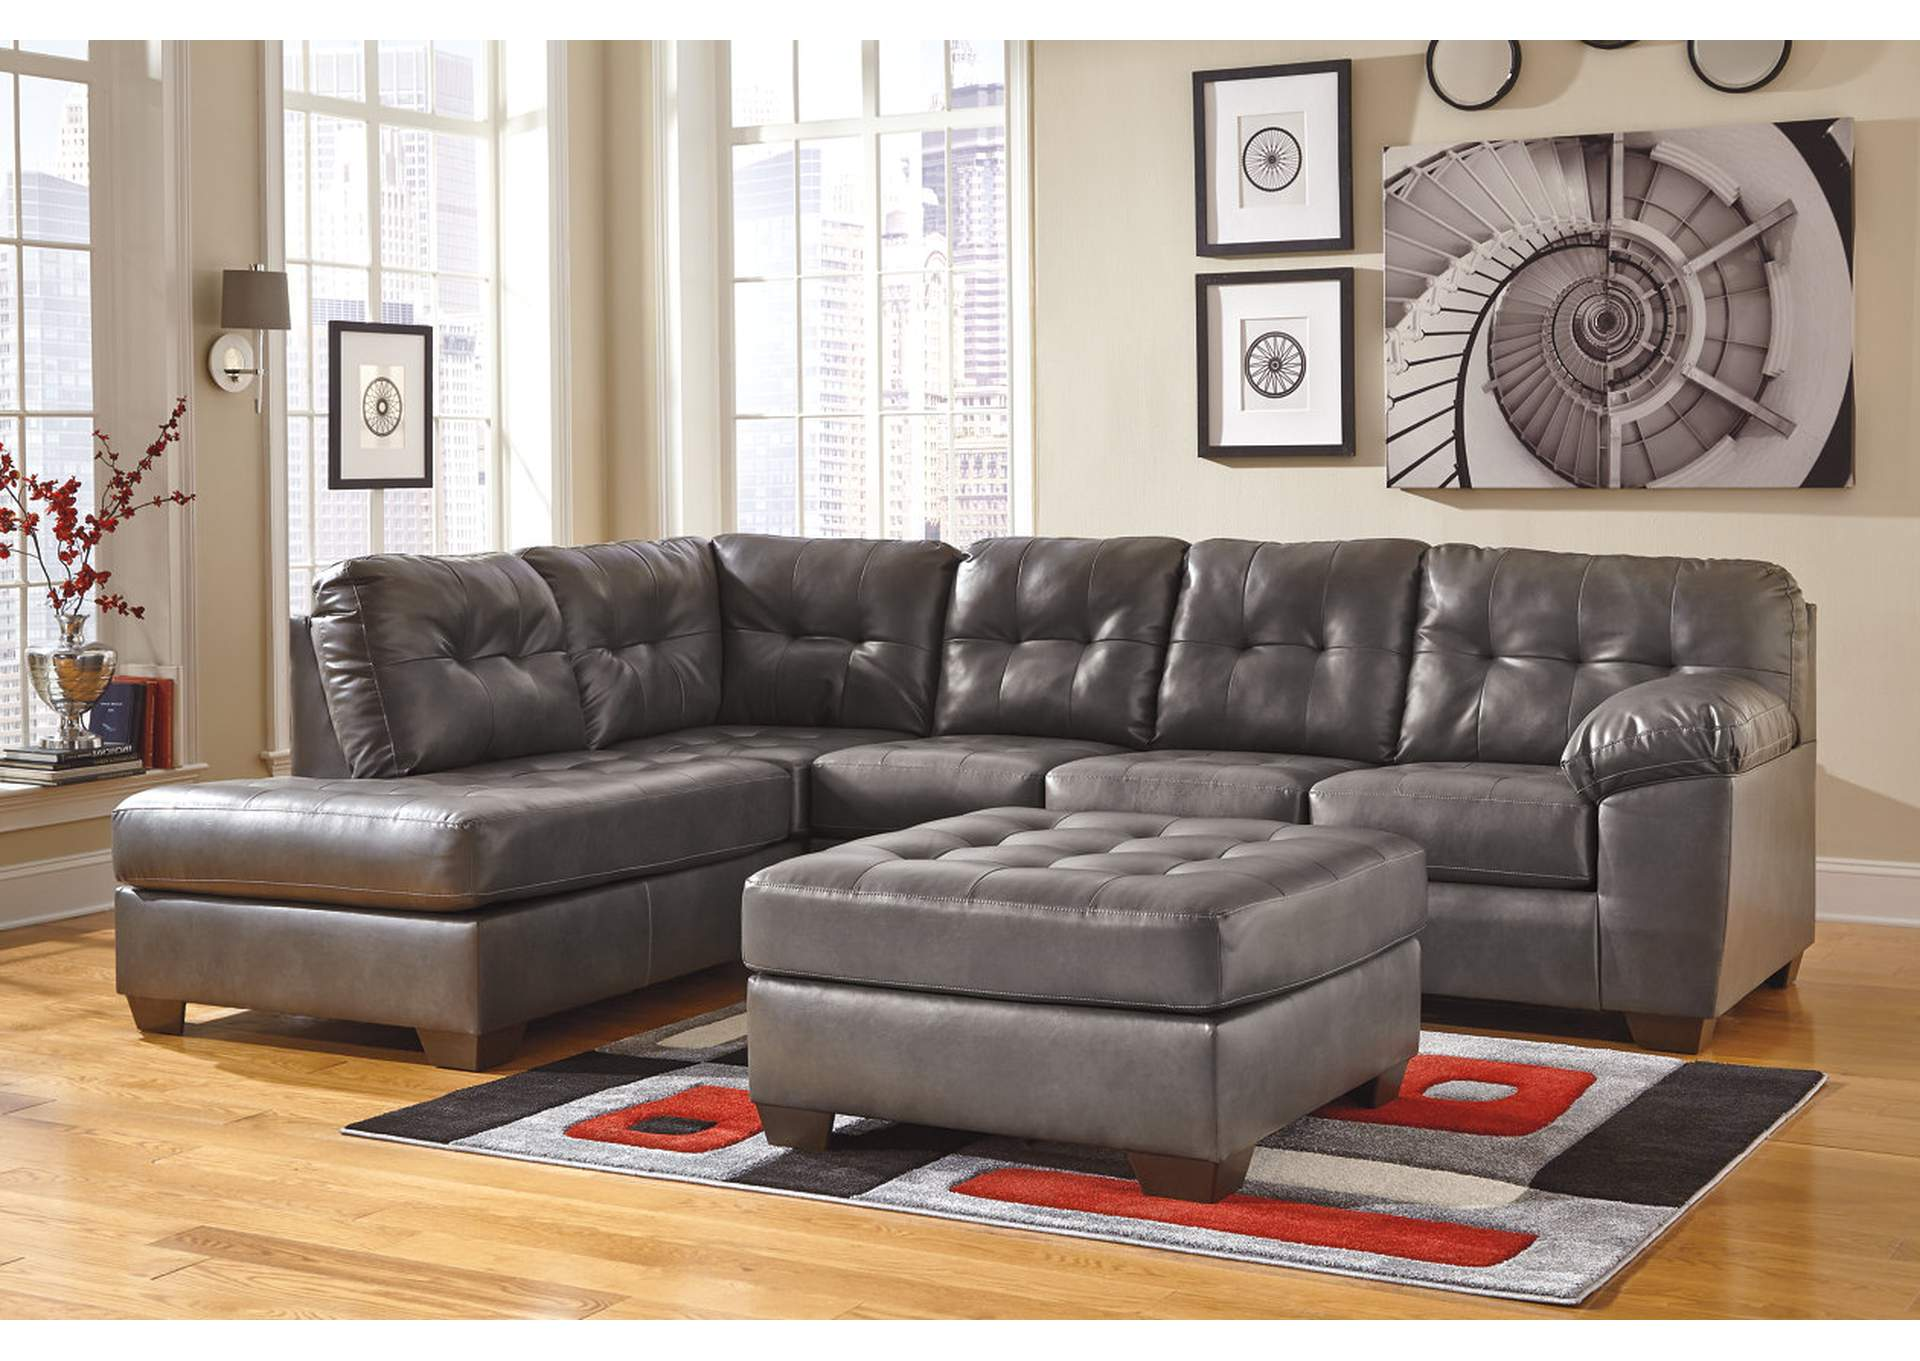 Alliston DuraBlend Gray Left Facing Chaise End Sectional & Oversized Accent Ottoman,Signature Design By Ashley